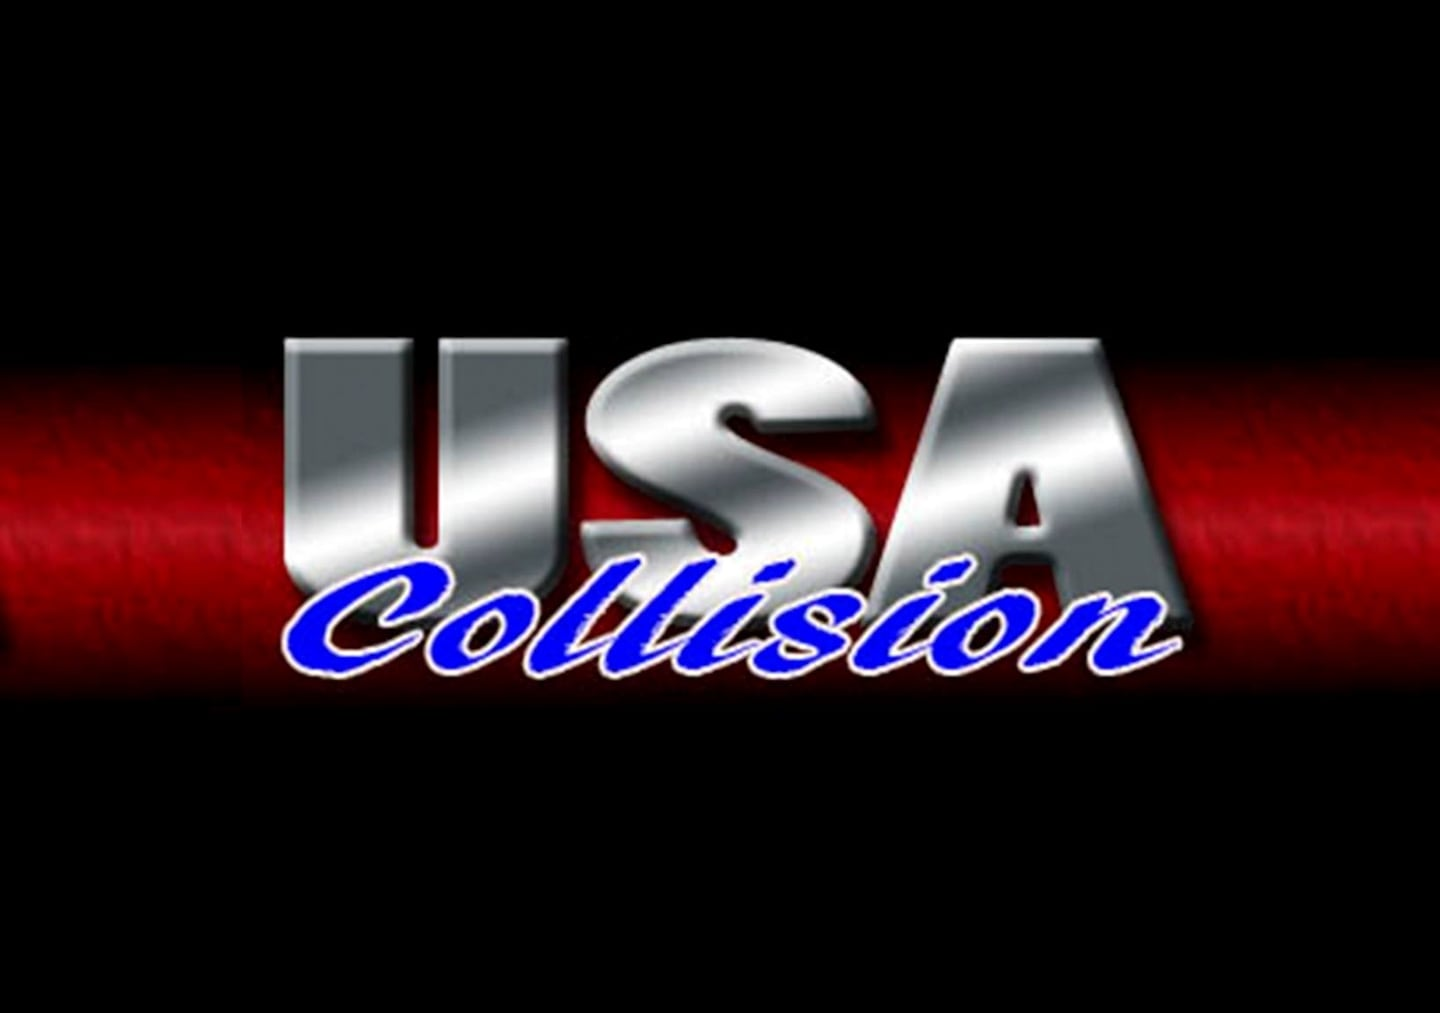 USA Collision